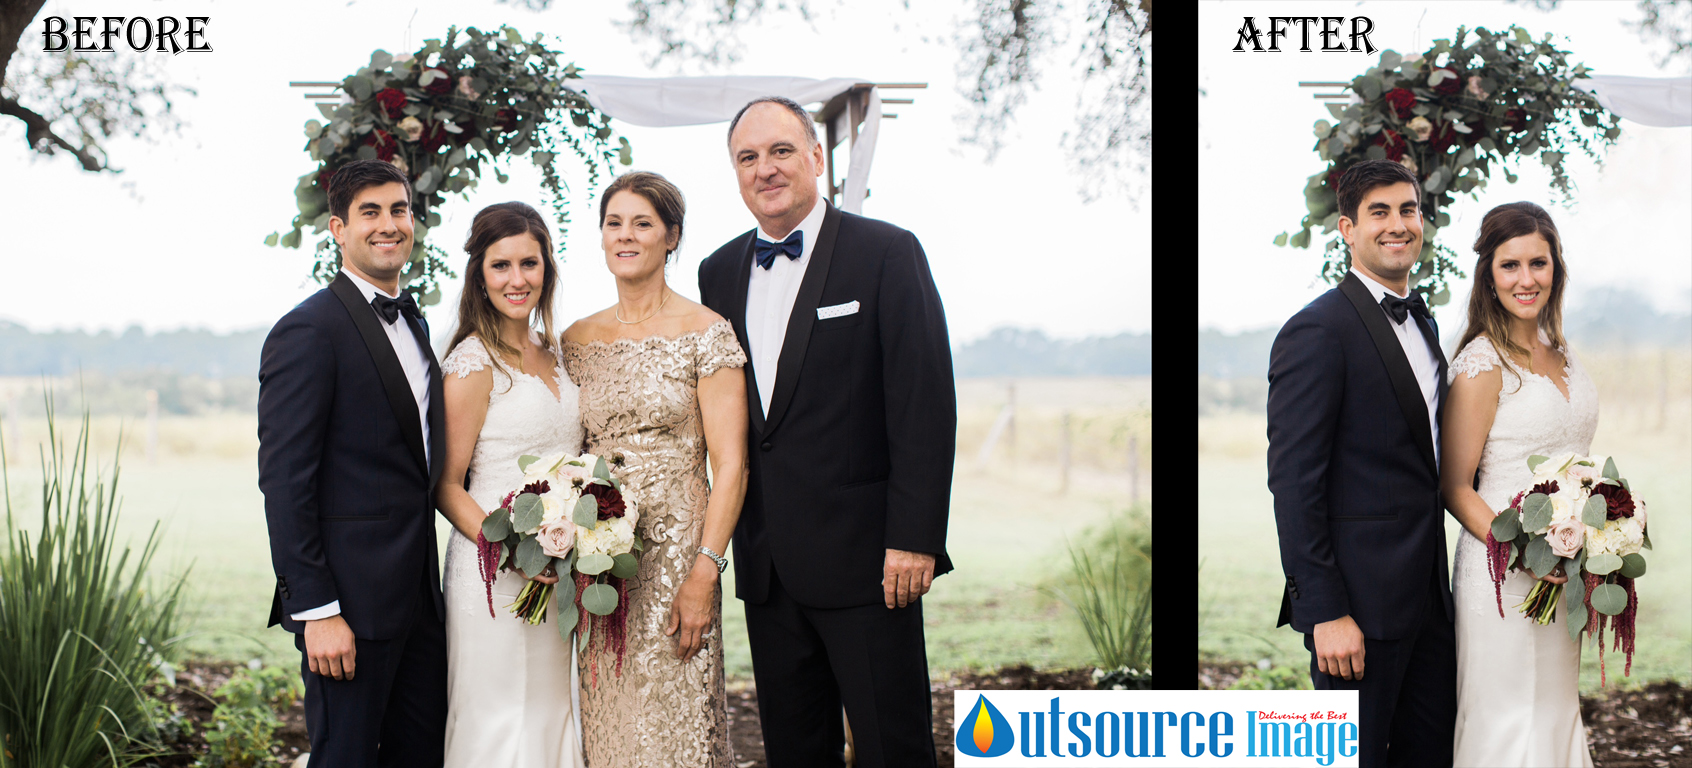 Image Editing Services for Wedding Photographer's in Europe Countries